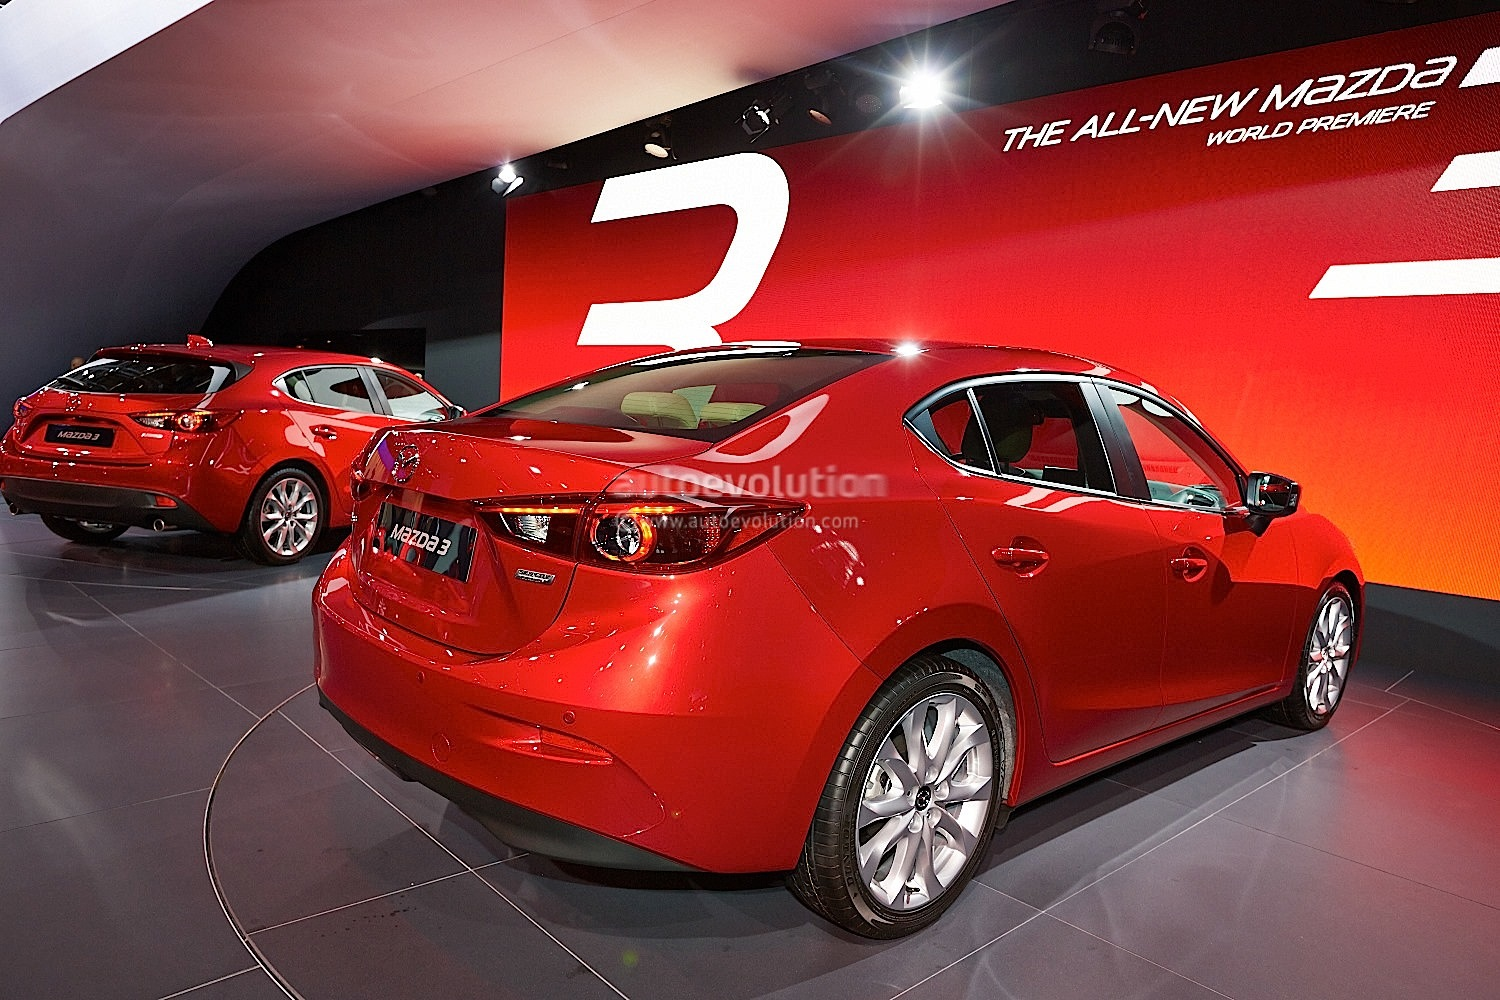 Mazda3 5 Door >> Frankfurt 2013: All-New Mazda3 Hatch and Sedan [Live Photos] - autoevolution